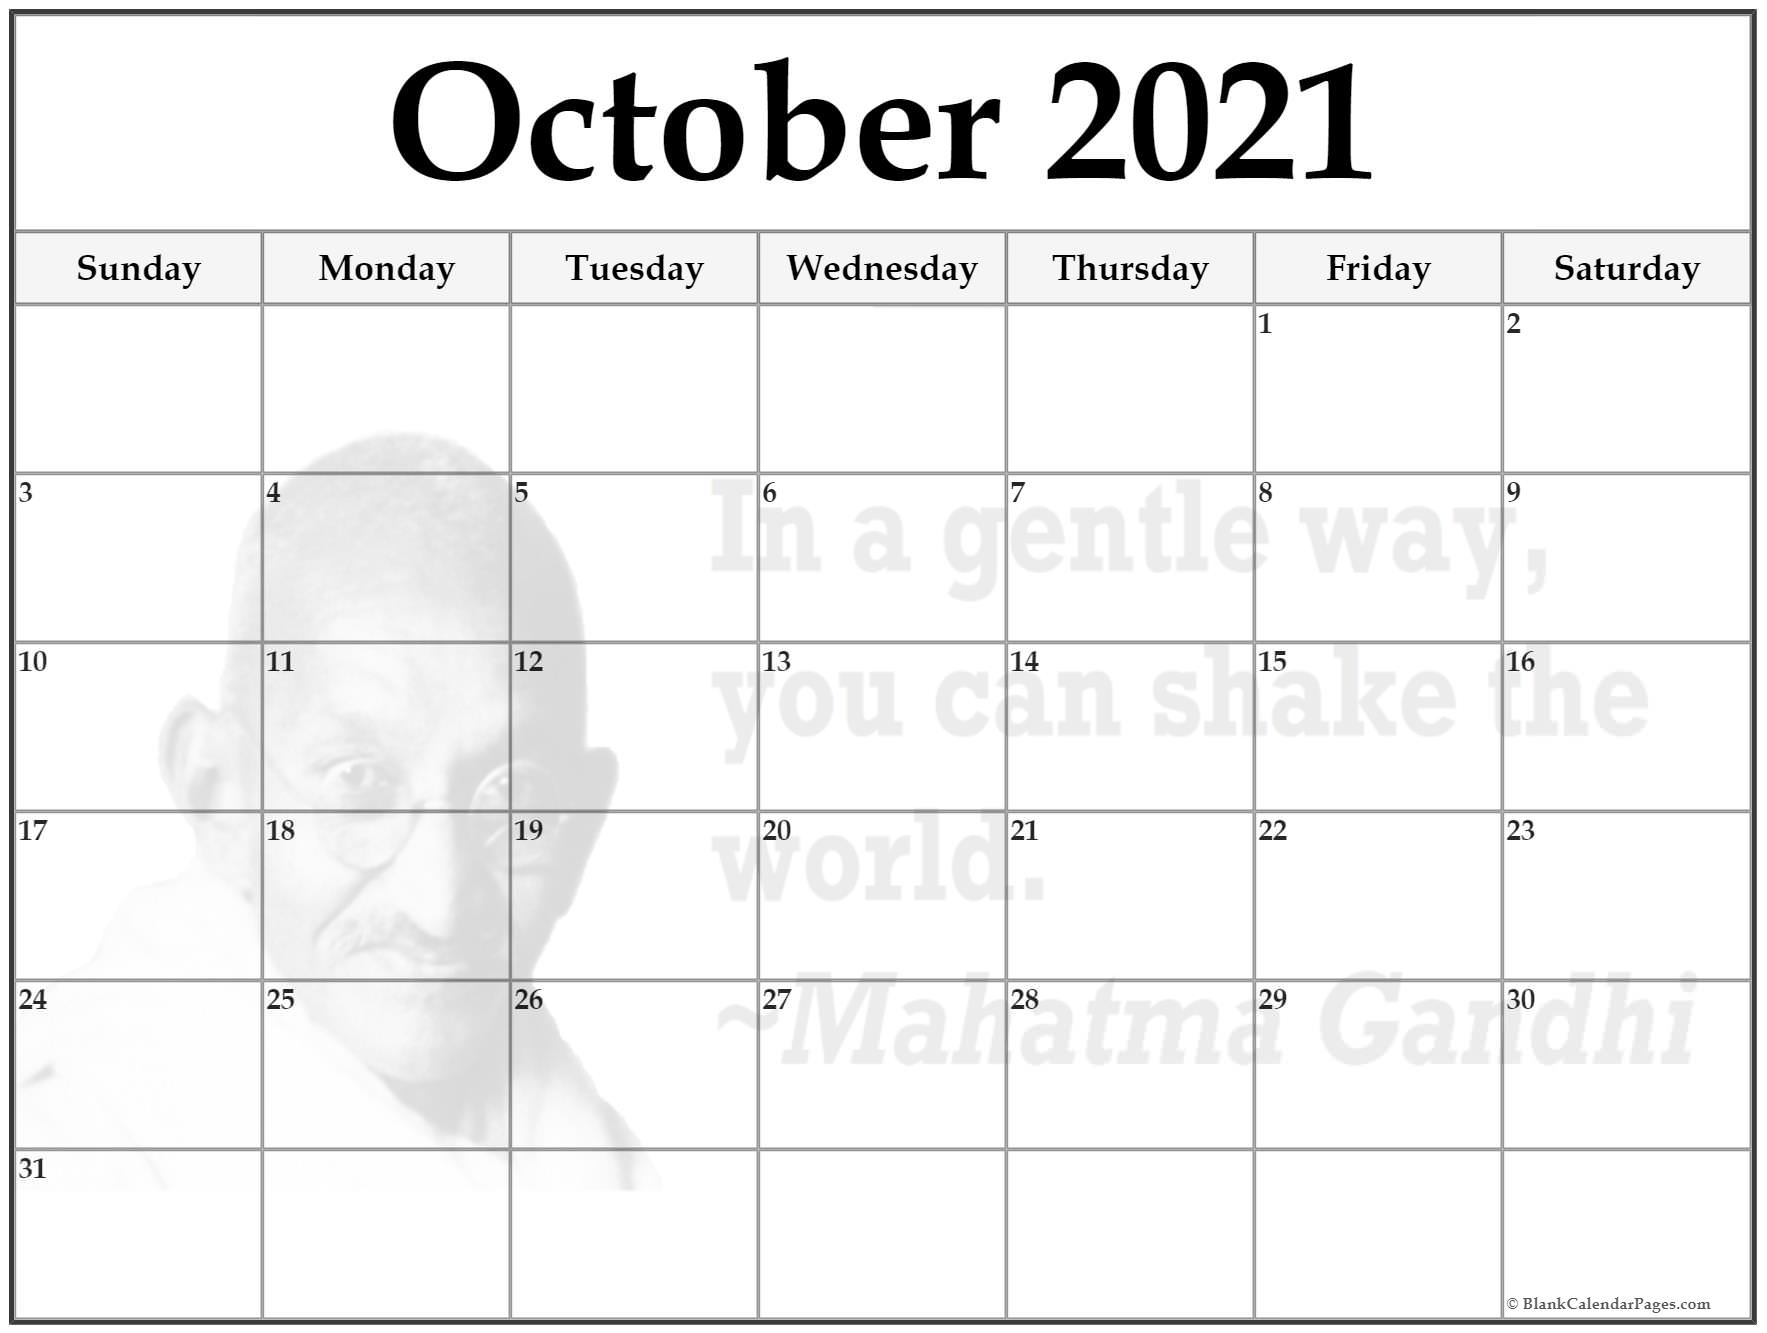 October 2020 gandhi calendar . In a gentle way, you can shake the world. ~Mahatma Gandhi